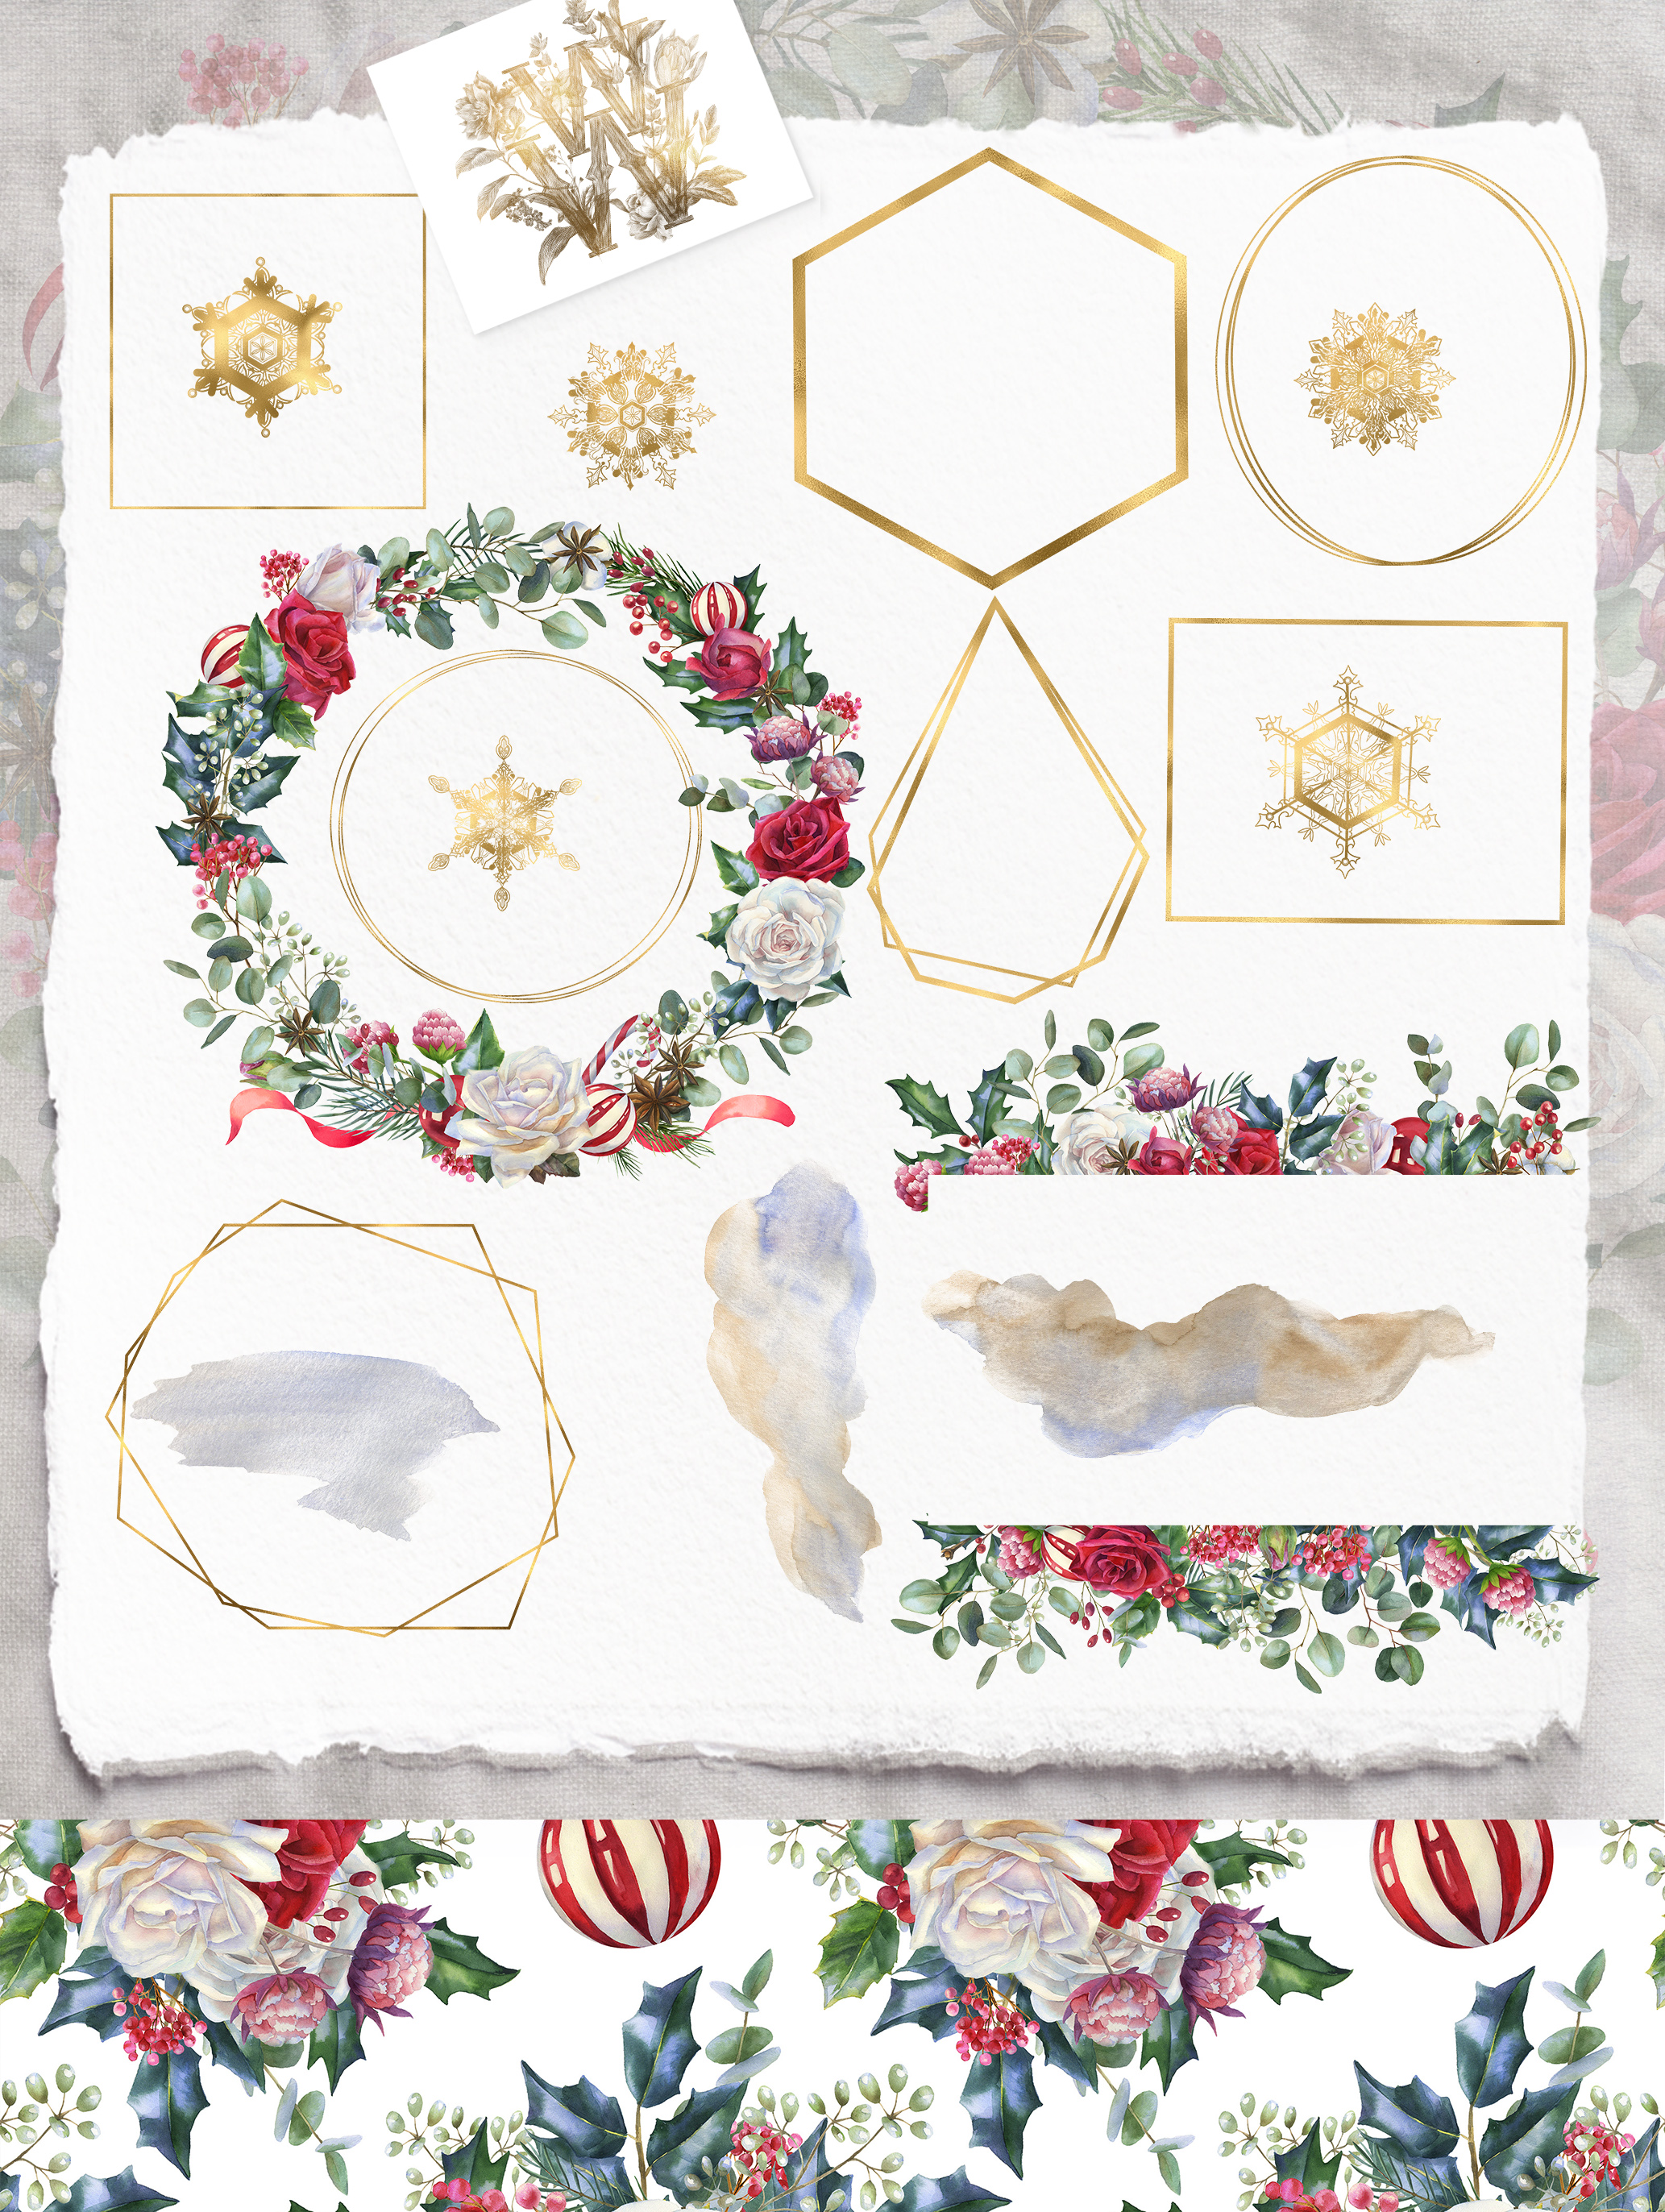 Christmas floral border clipart, Watercolor winter frame example image 3